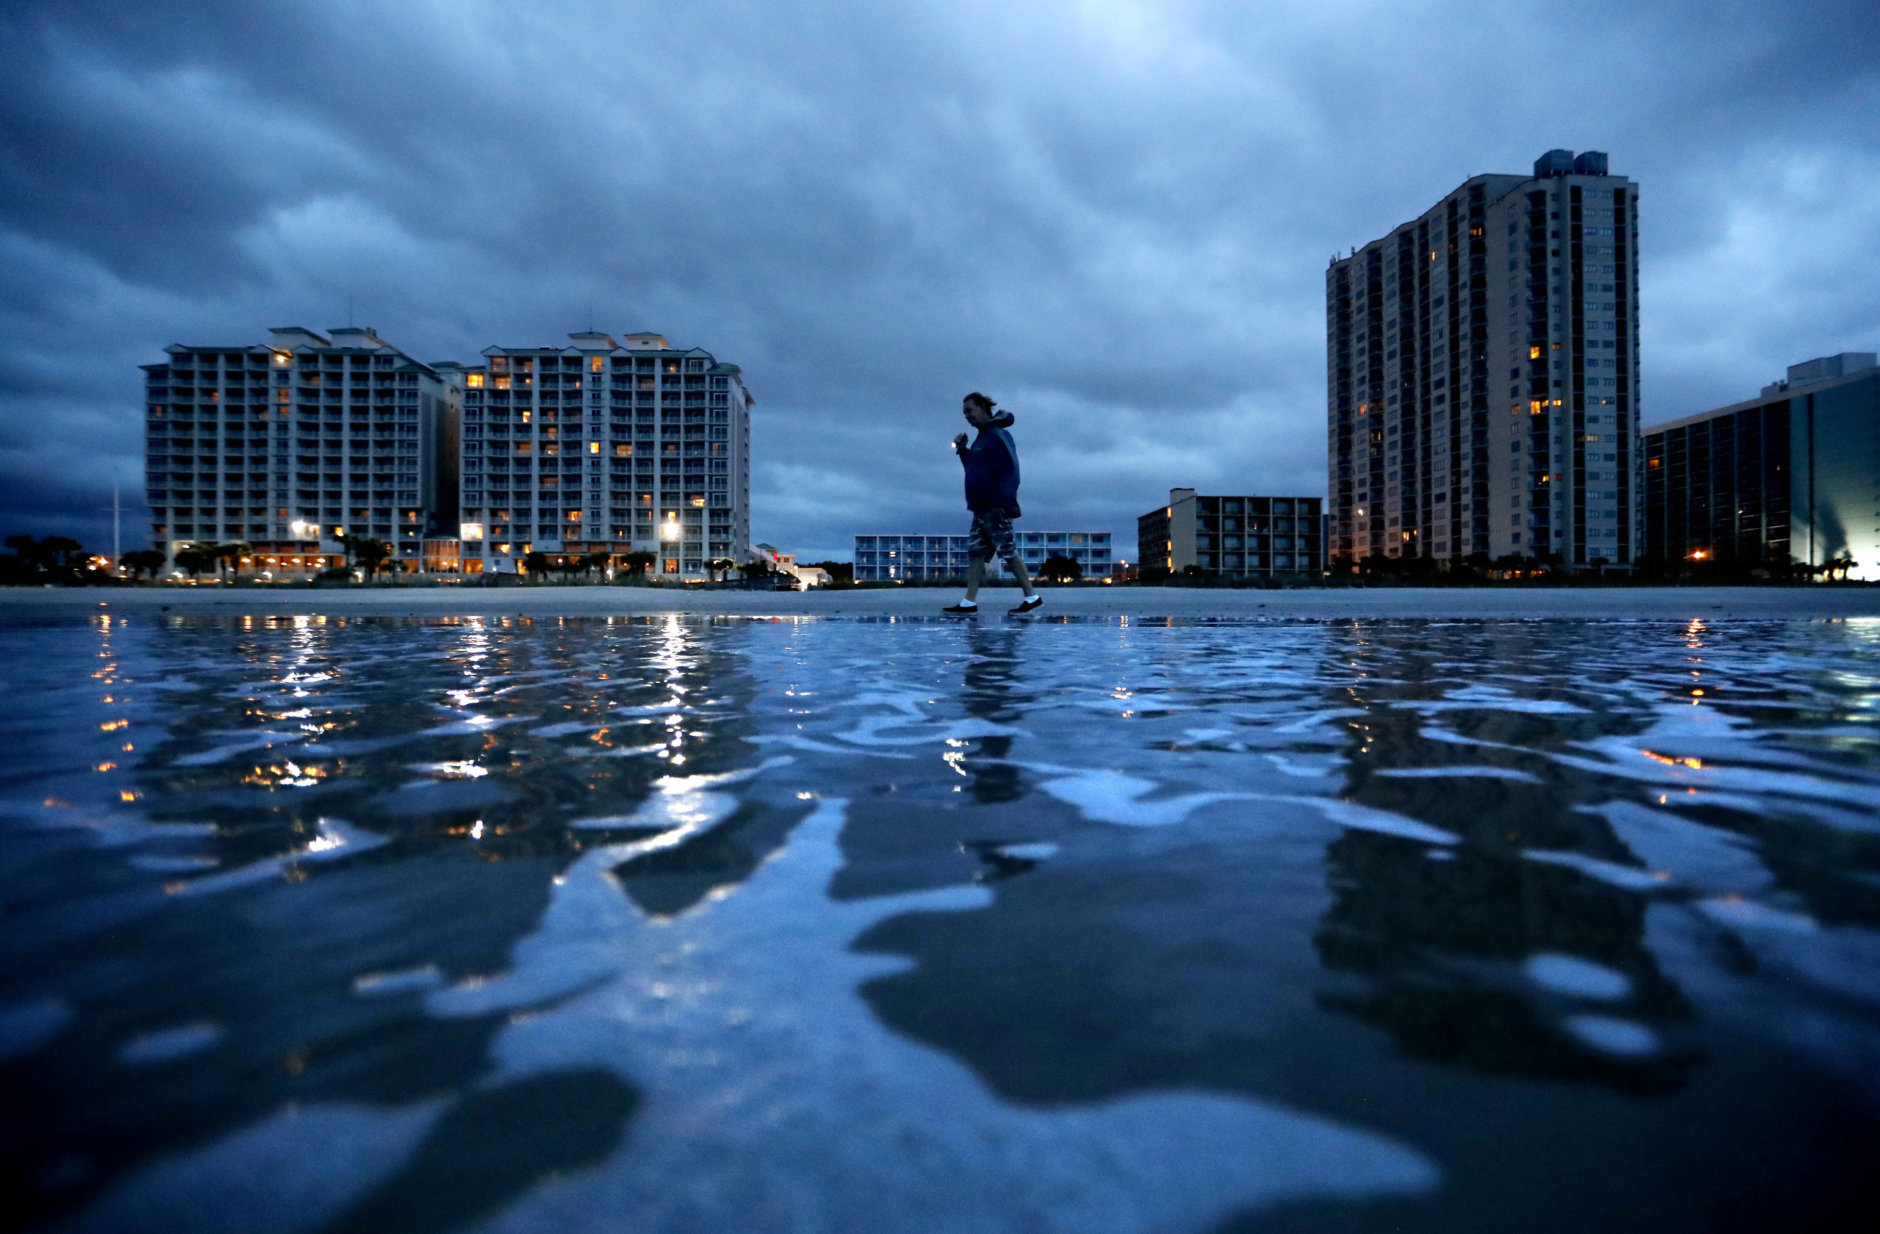 """Russ Lewis looks for shells along the beach as Hurricane Florence approaches Myrtle Beach, S.C., Friday, Sept. 14, 2018. """"We might get lucky we might not we'll find out,"""" said Lewis of the storm. (AP Photo/David Goldman)"""